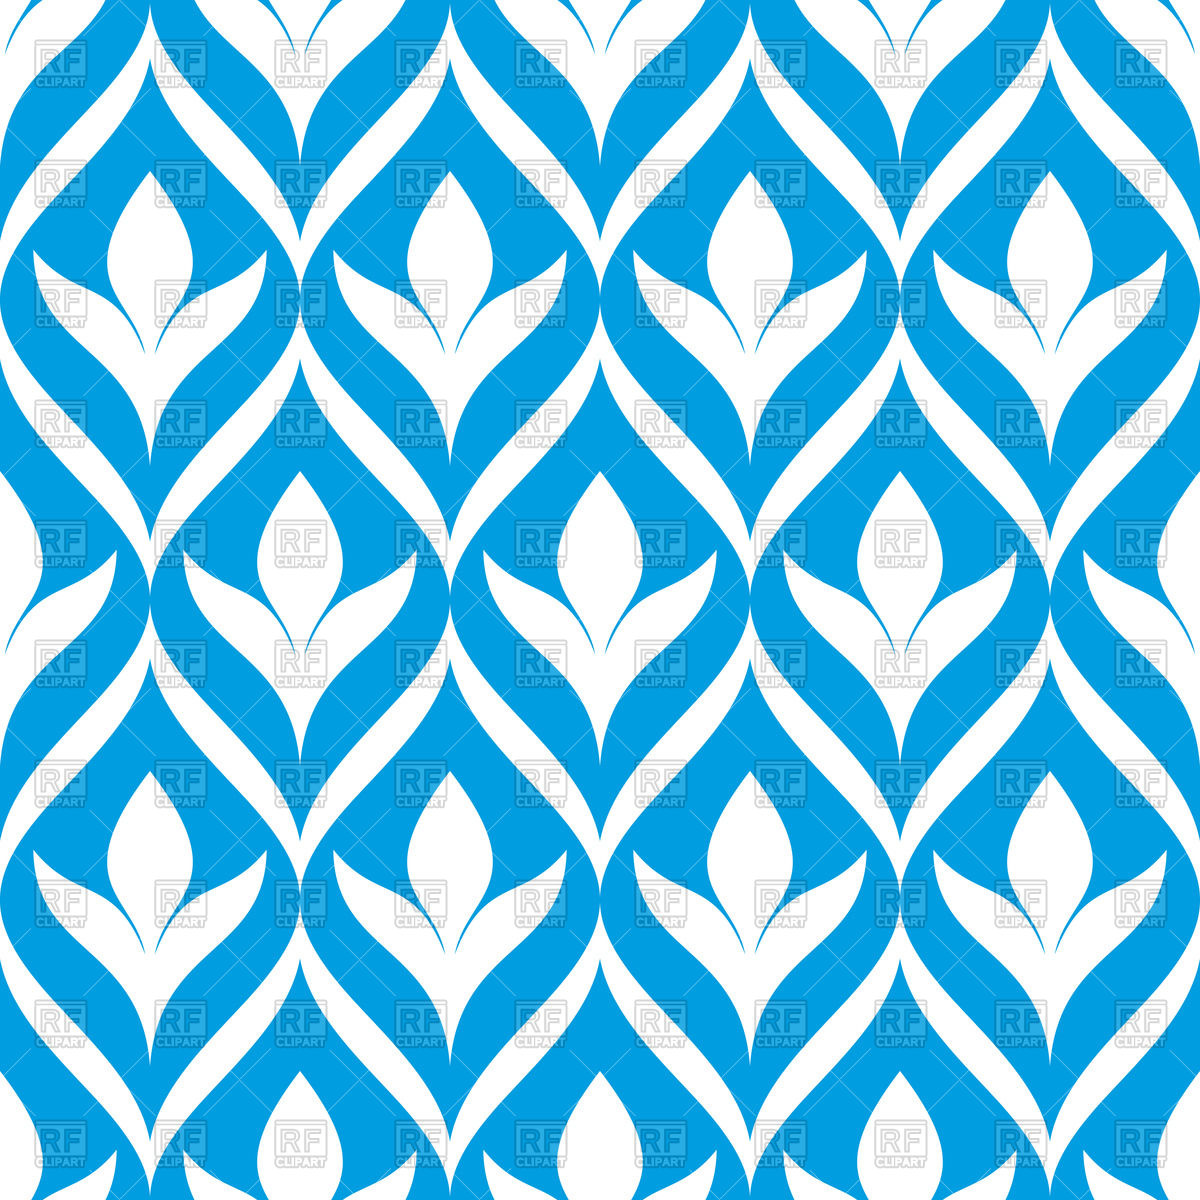 1200x1200 Abstract Blue And White Floral Seamless Wallpaper Royalty Free